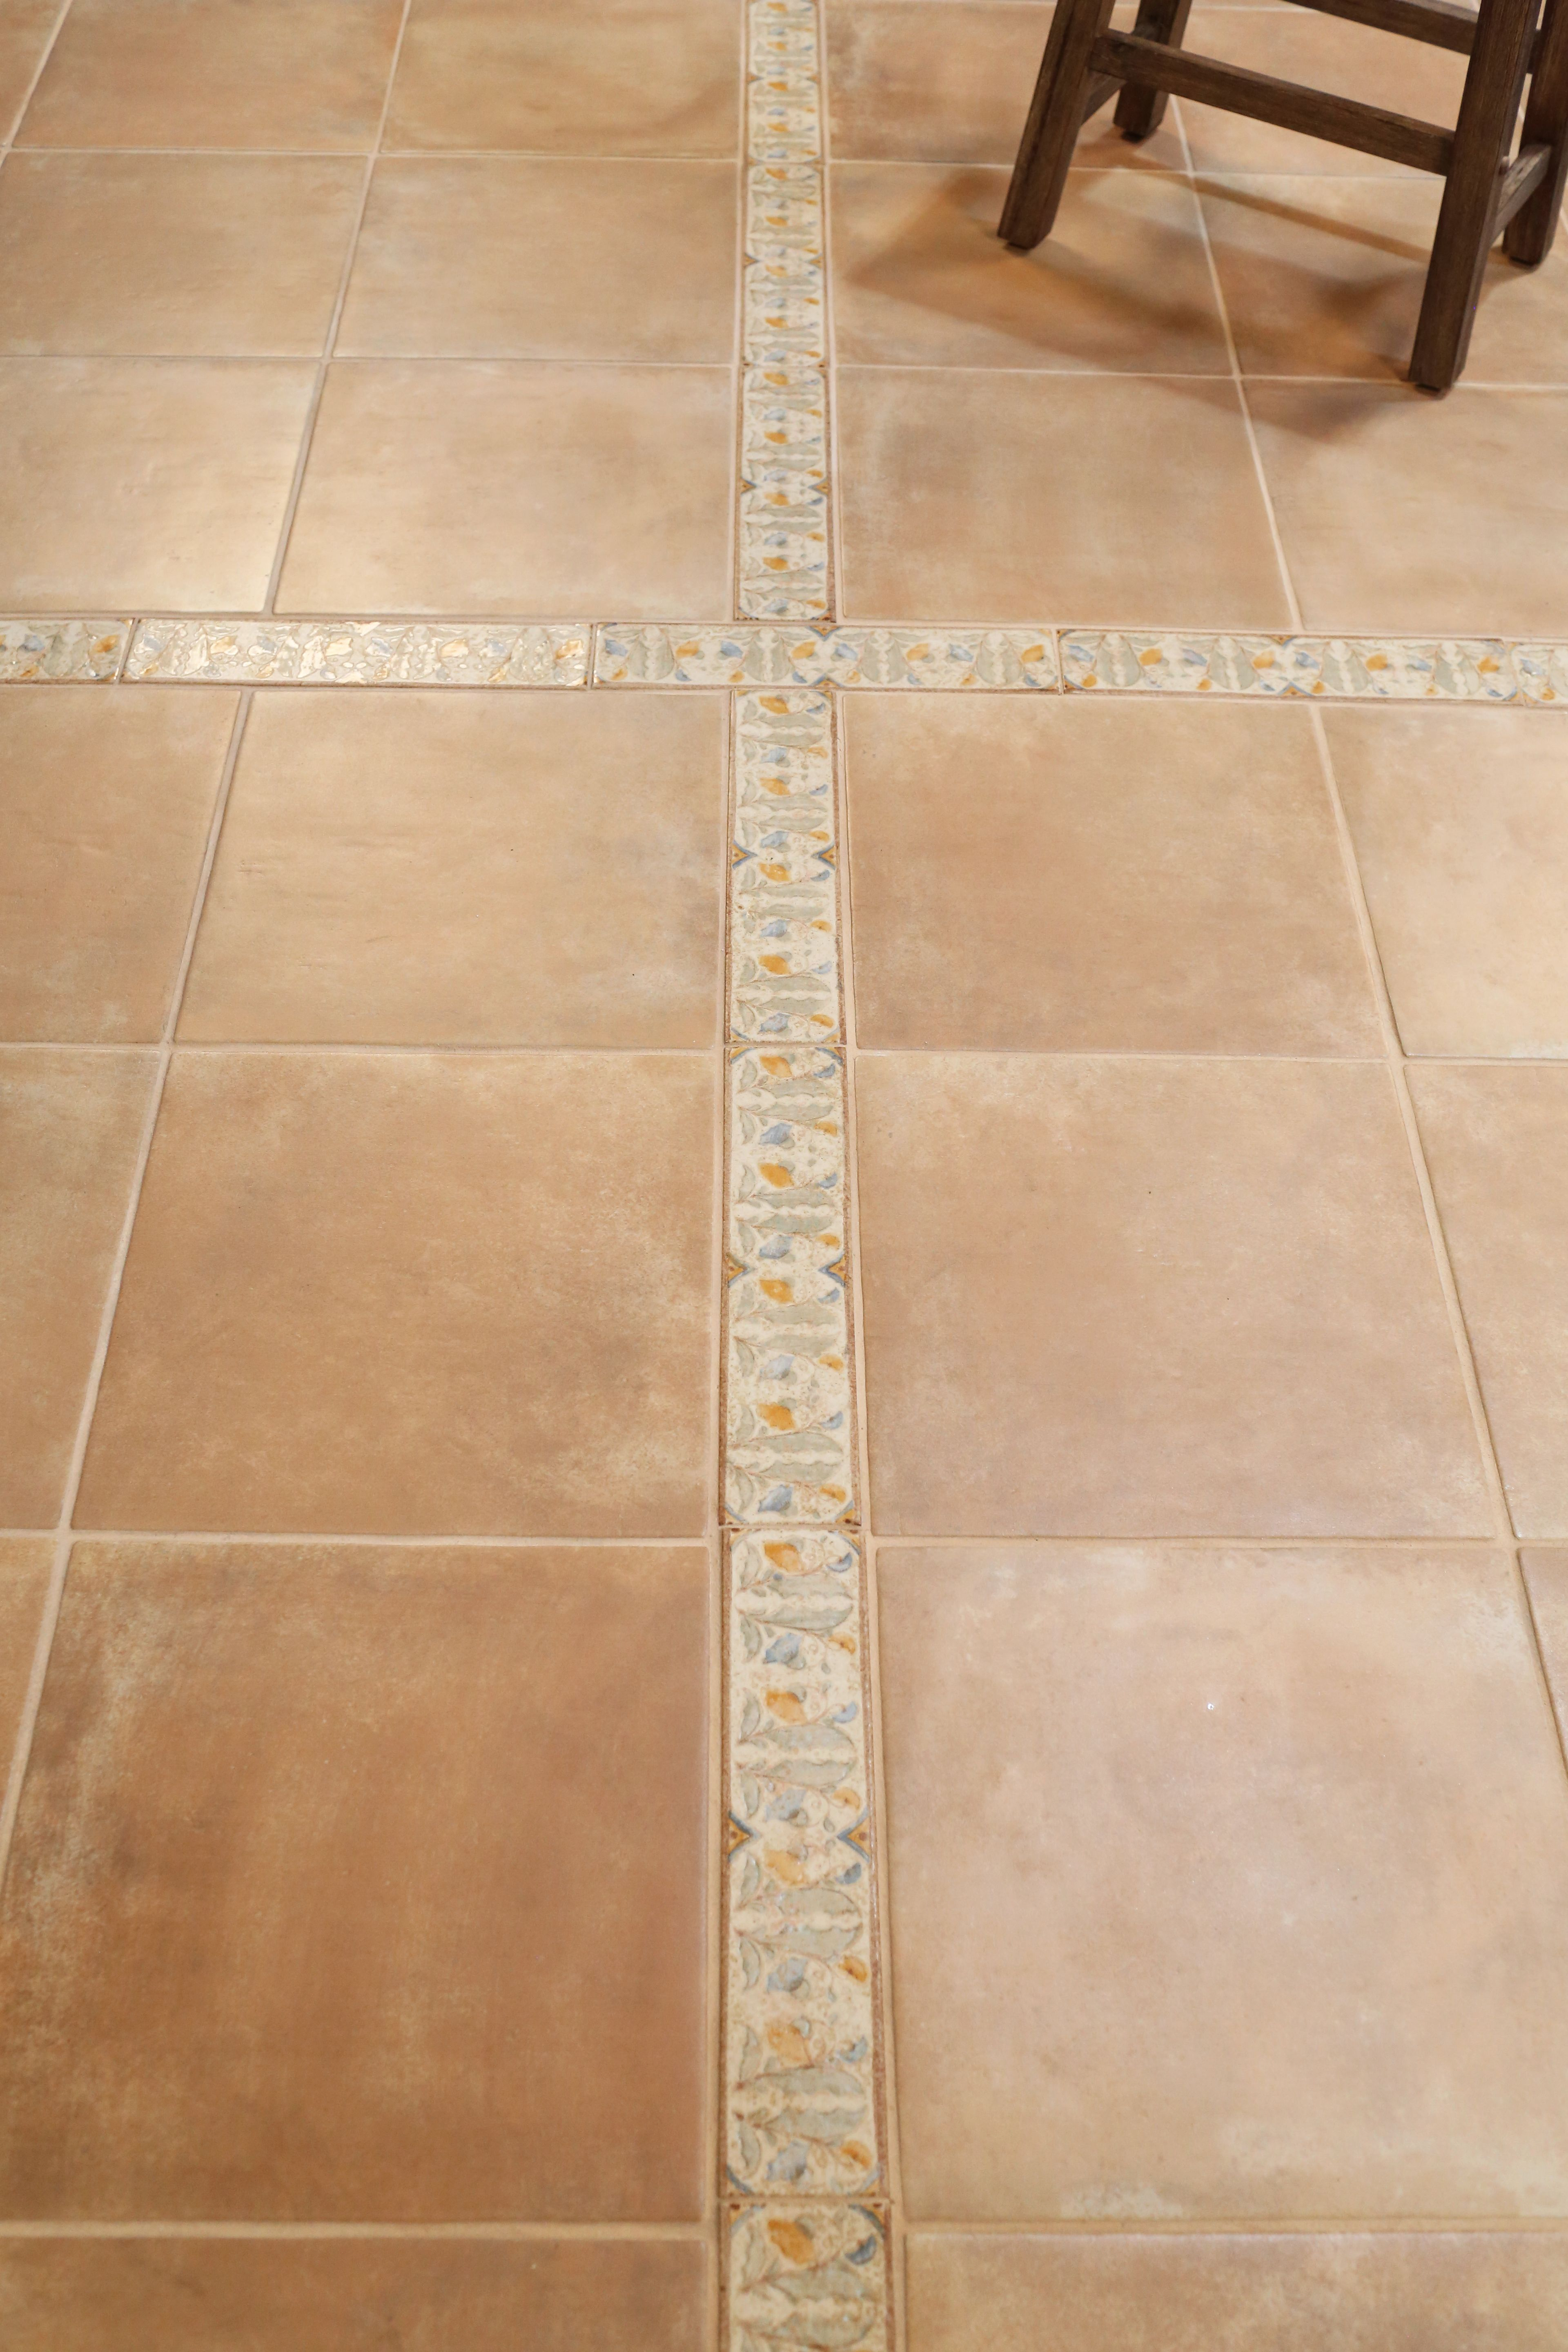 Cotto nature from bedrosians tile stone floors pinterest cotto nature from bedrosians tile stone dailygadgetfo Images